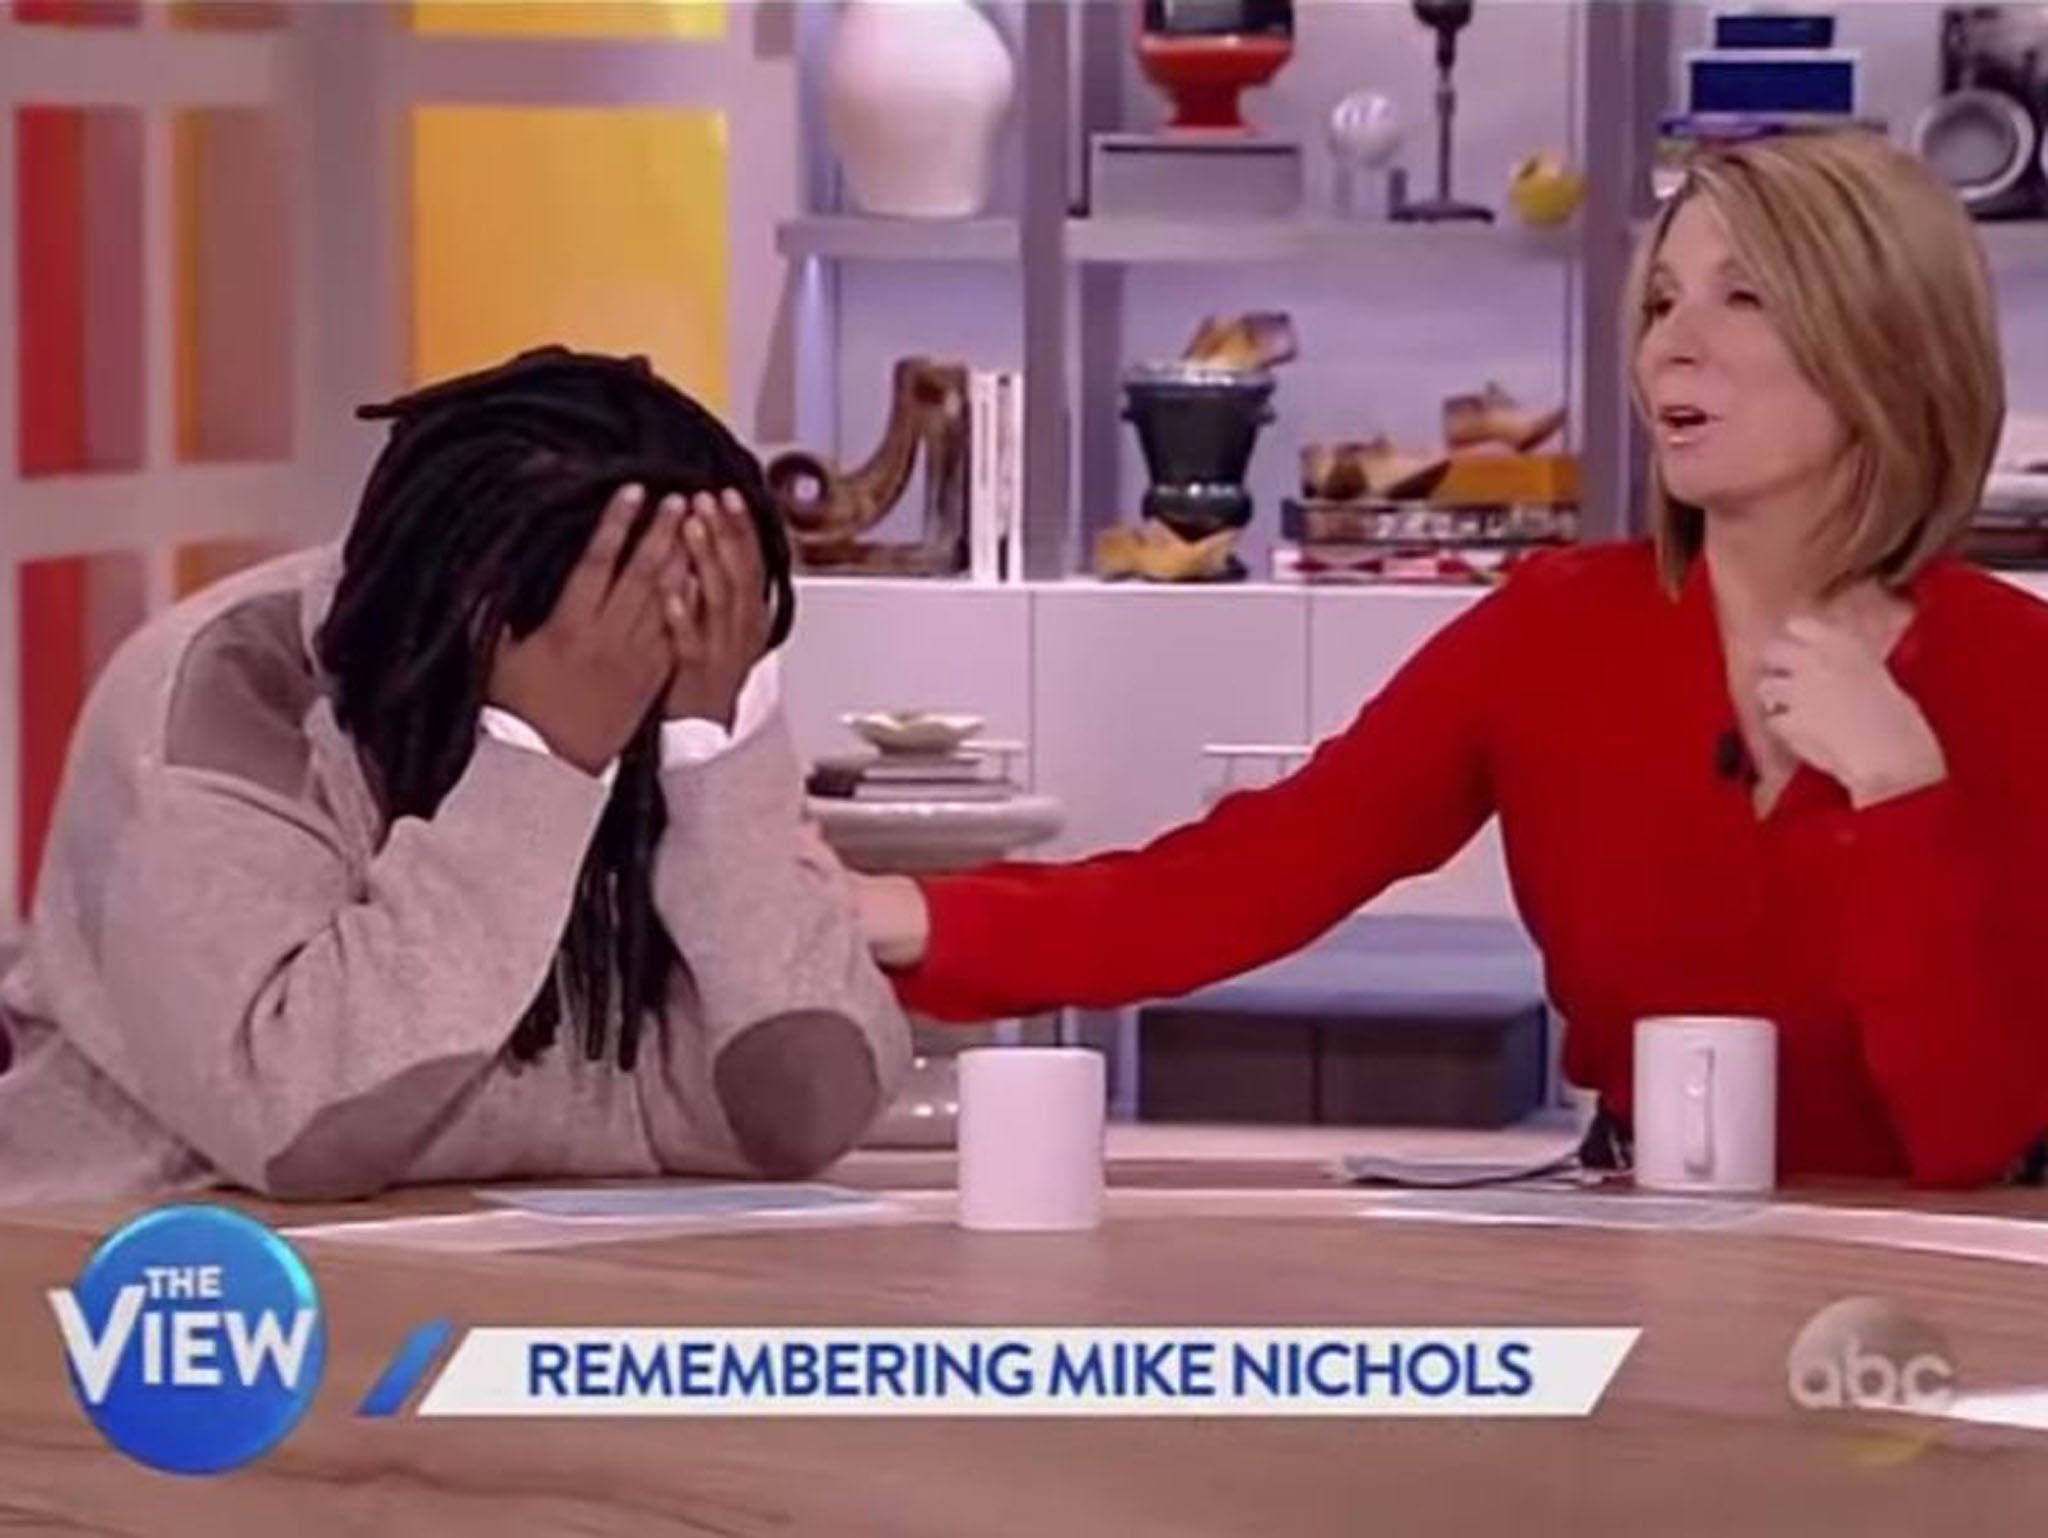 who is whoopi goldberg dating now 2014 Now i just go straight down the middle of the is whoopi goldberg gay source(s): she is the equivalent of david letterman when it comes to dating.